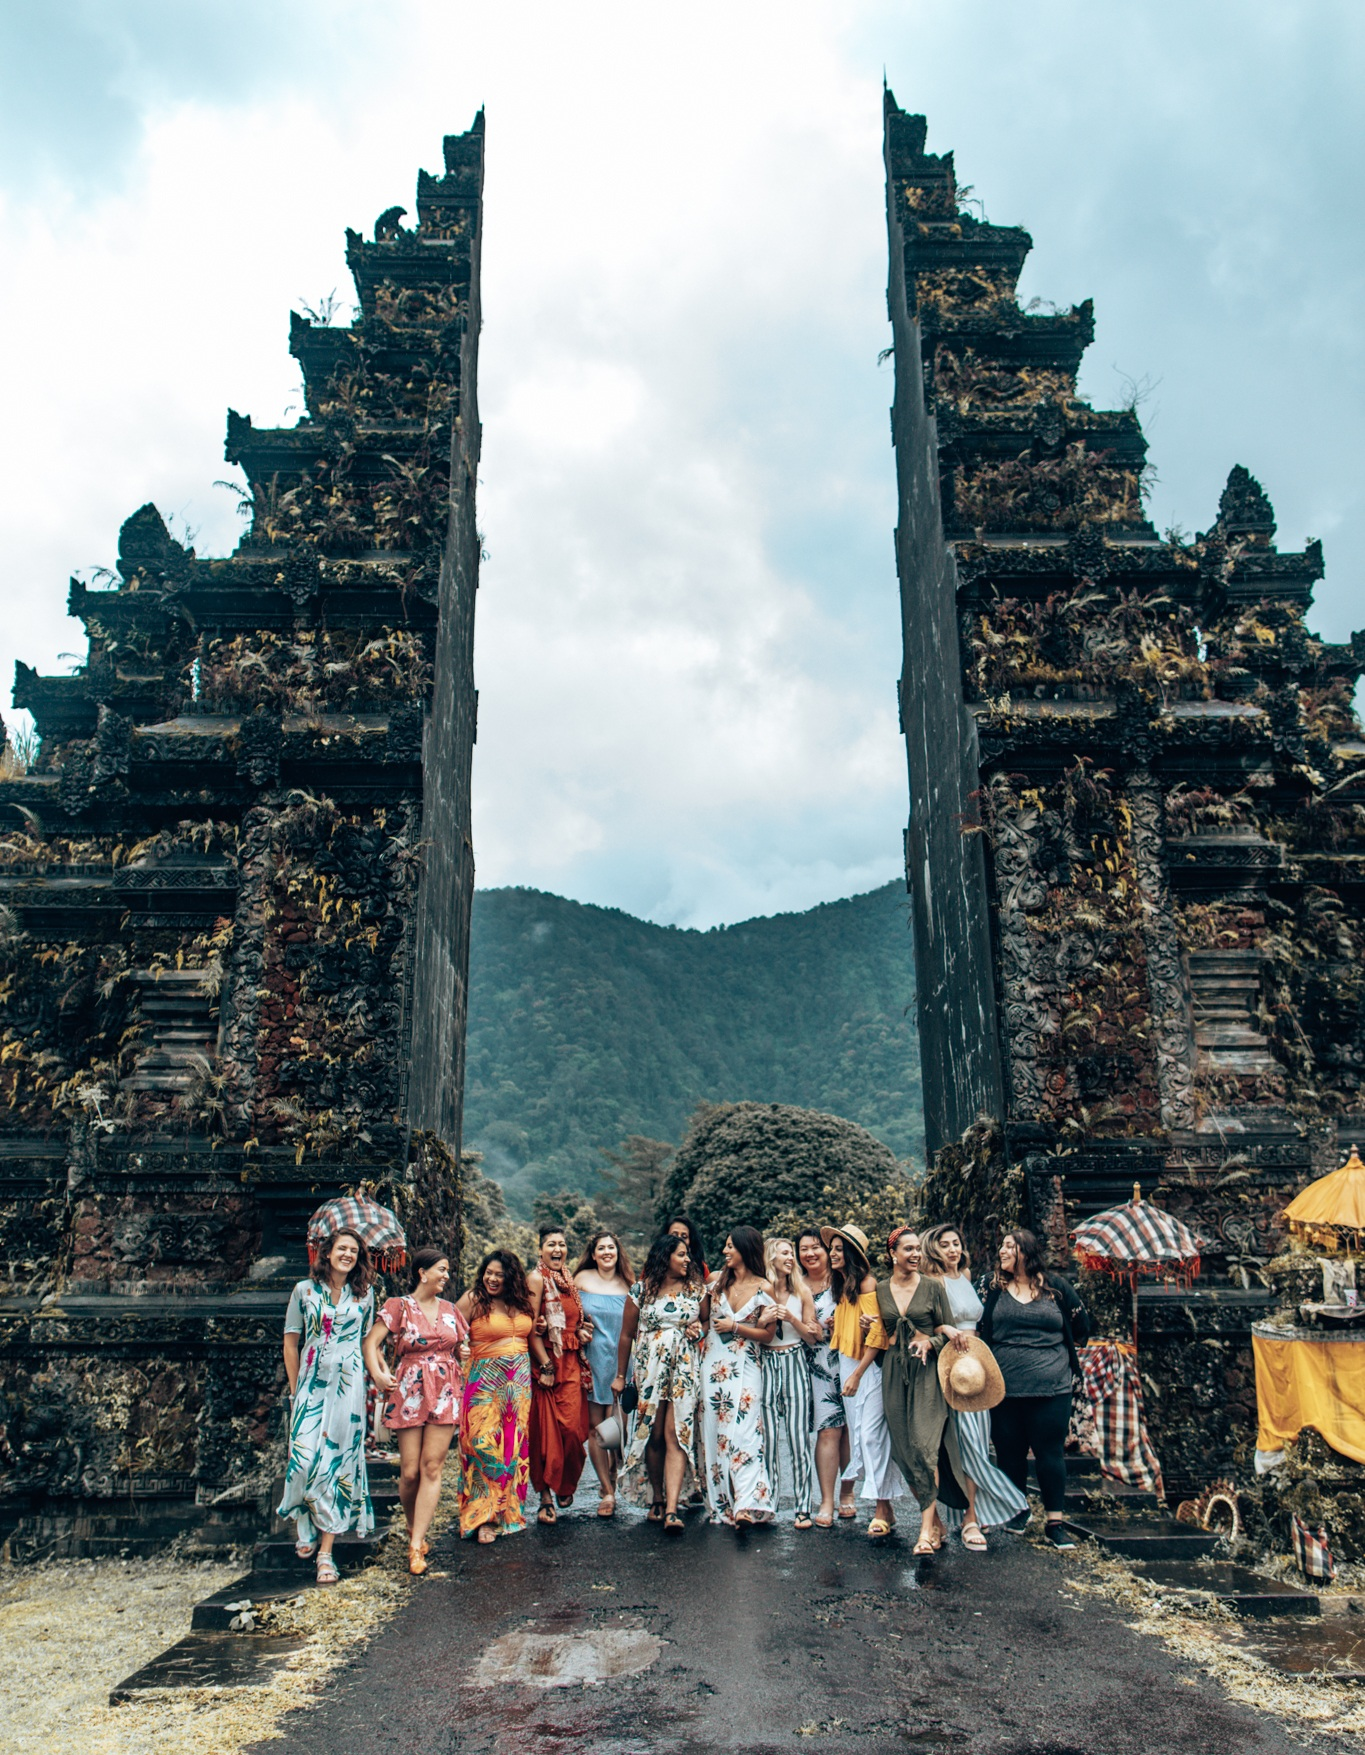 August 3 - August 10, 2020 - 7 nights / 8 daysGroup Size: 16*12 spots left*Bali is the ULTIMATE bucket list destination for every girl. Lucky for you we are taking The Girls Trip back to one of the most breathtaking islands in the world. Join us as we explore the Balinese culture and visit some of the most beautiful sights on the island.We're talking about temples, waterfalls, food, and most of all, the people who make this island so beautiful. We will be taking you through an experience you will remember for a lifetime.Here's a little taste of what you can expect:*Boutique Private Villa with Pool, Beautiful Sunsets, and Picture Perfect Backdrops**An Experience Packed Itinerary Customized with Curated Excursions**Local and Specialty Dining Experiences*